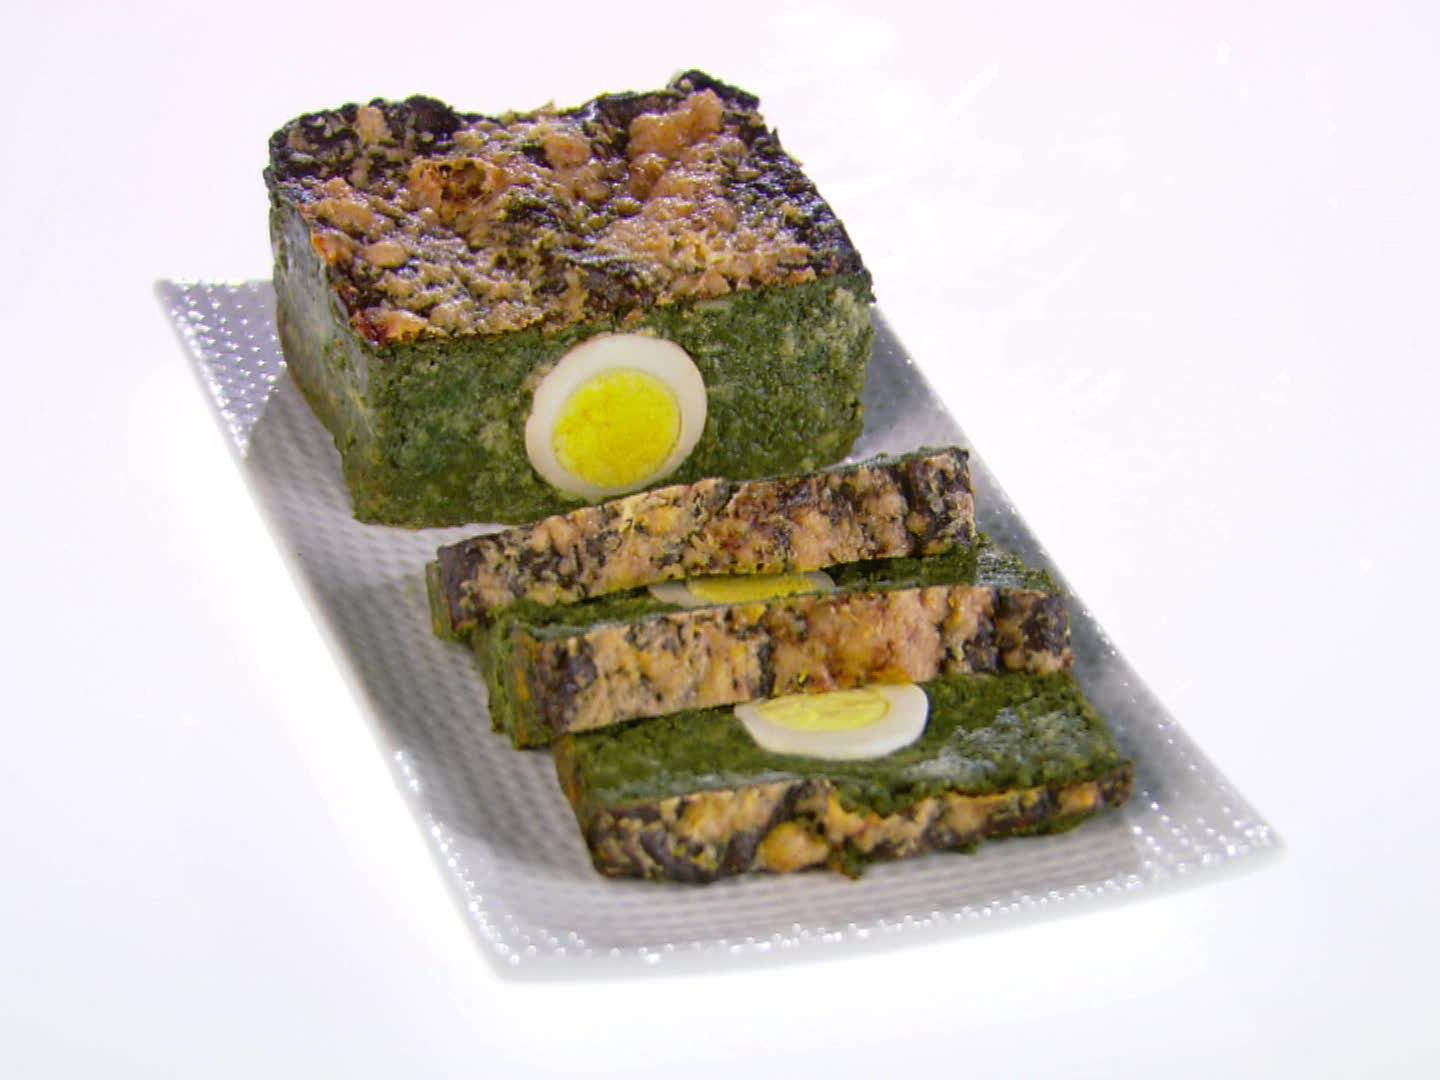 Spinach loaf recipe loaf recipes giada de laurentiis and spinach spinach loaf recipes forloaf recipesgiada recipeshealthy recipeshealthy foodshealthy eatingclean forumfinder Image collections